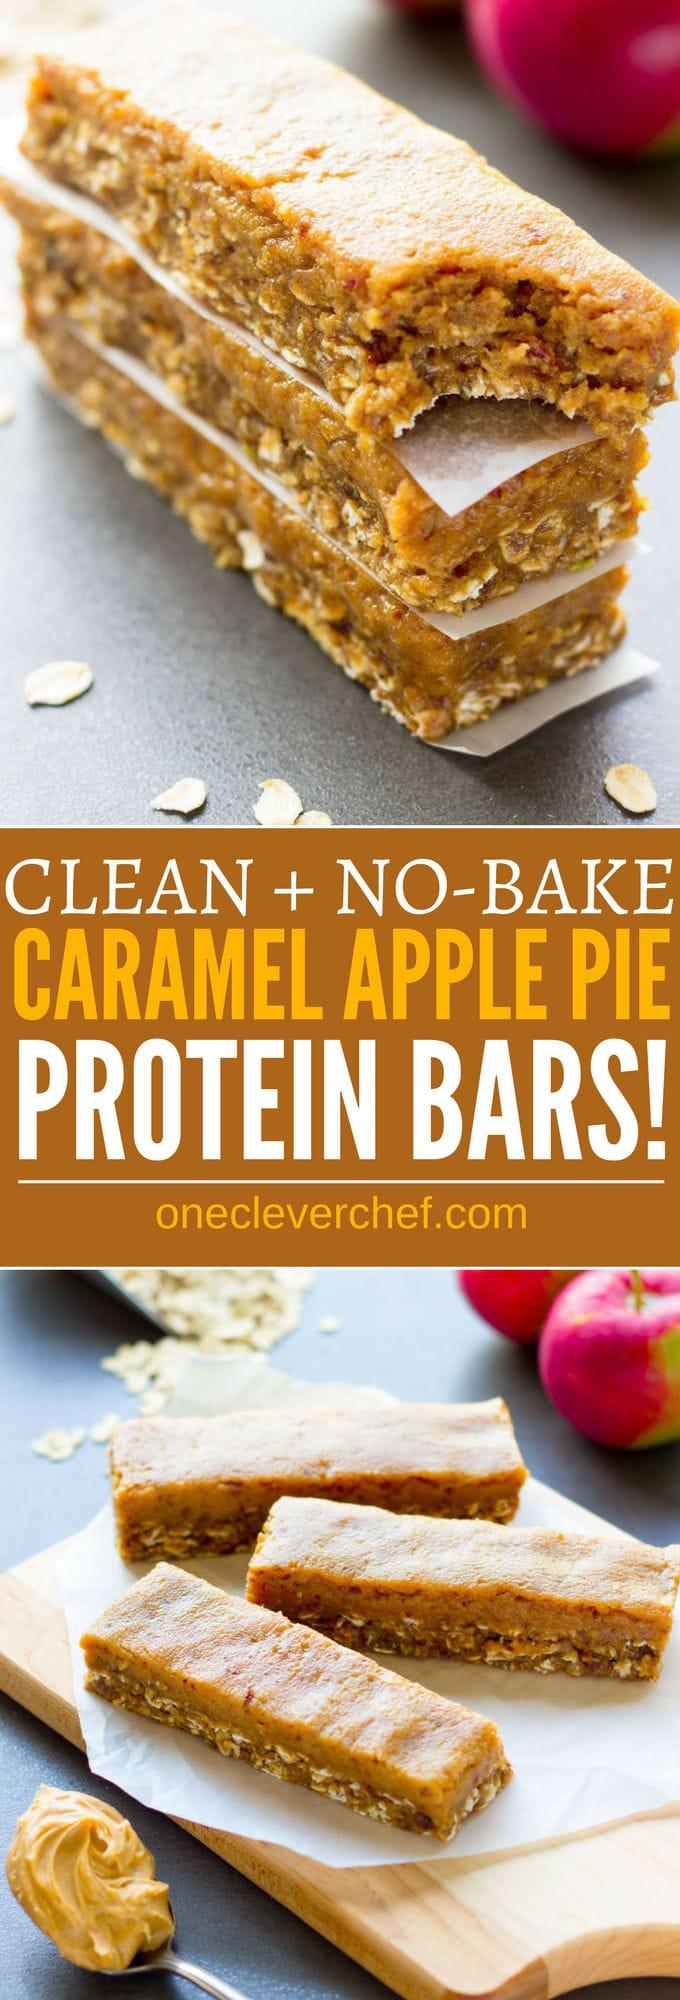 These delicious no-bake protein bars are a must-try fall season treat. Easy to make and super healthy, they taste like your grandma's caramel apple pie, without the calories, refined-sugar and all the bad stuff. Raw, entirely gluten-free, vegan, dairy-free, egg-free, flourless and refined sugar-free, these delicious protein bars are the perfect breakfast, snack or post-workout treat. | www.onecleverchef.com